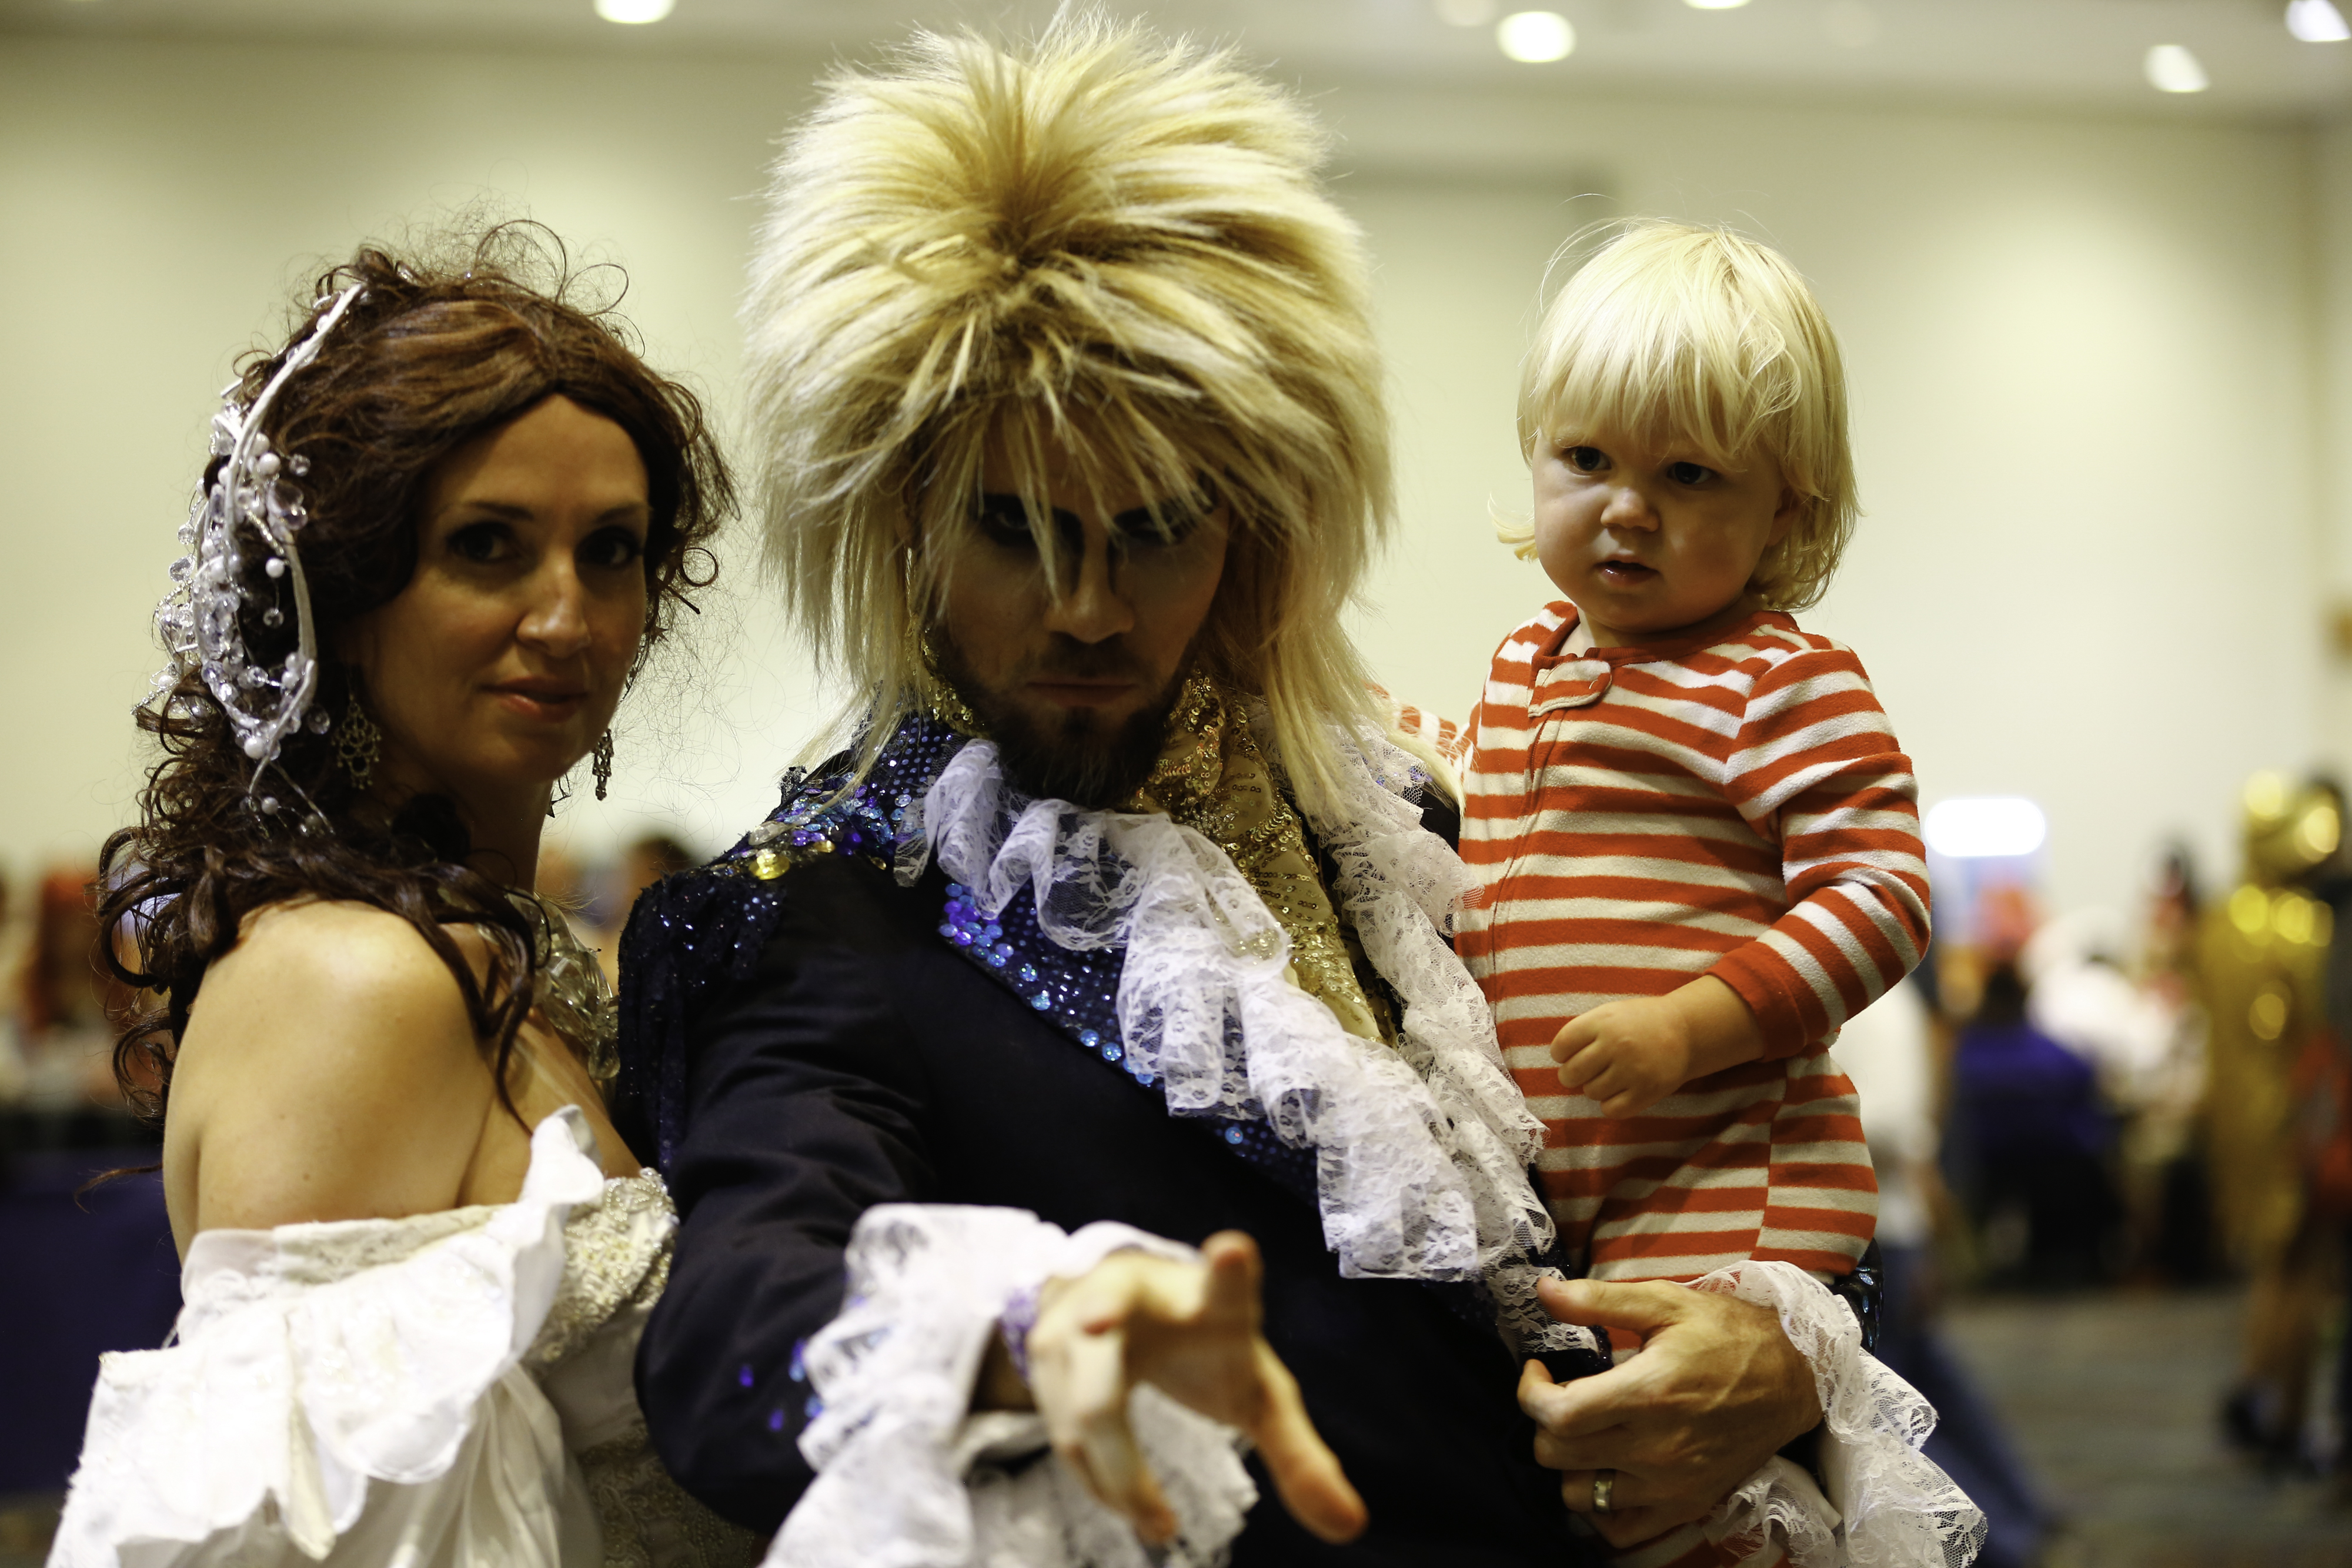 A family dressed as Sarah Williams, Jareth the Goblin Kind and Toby from Labyrinth.